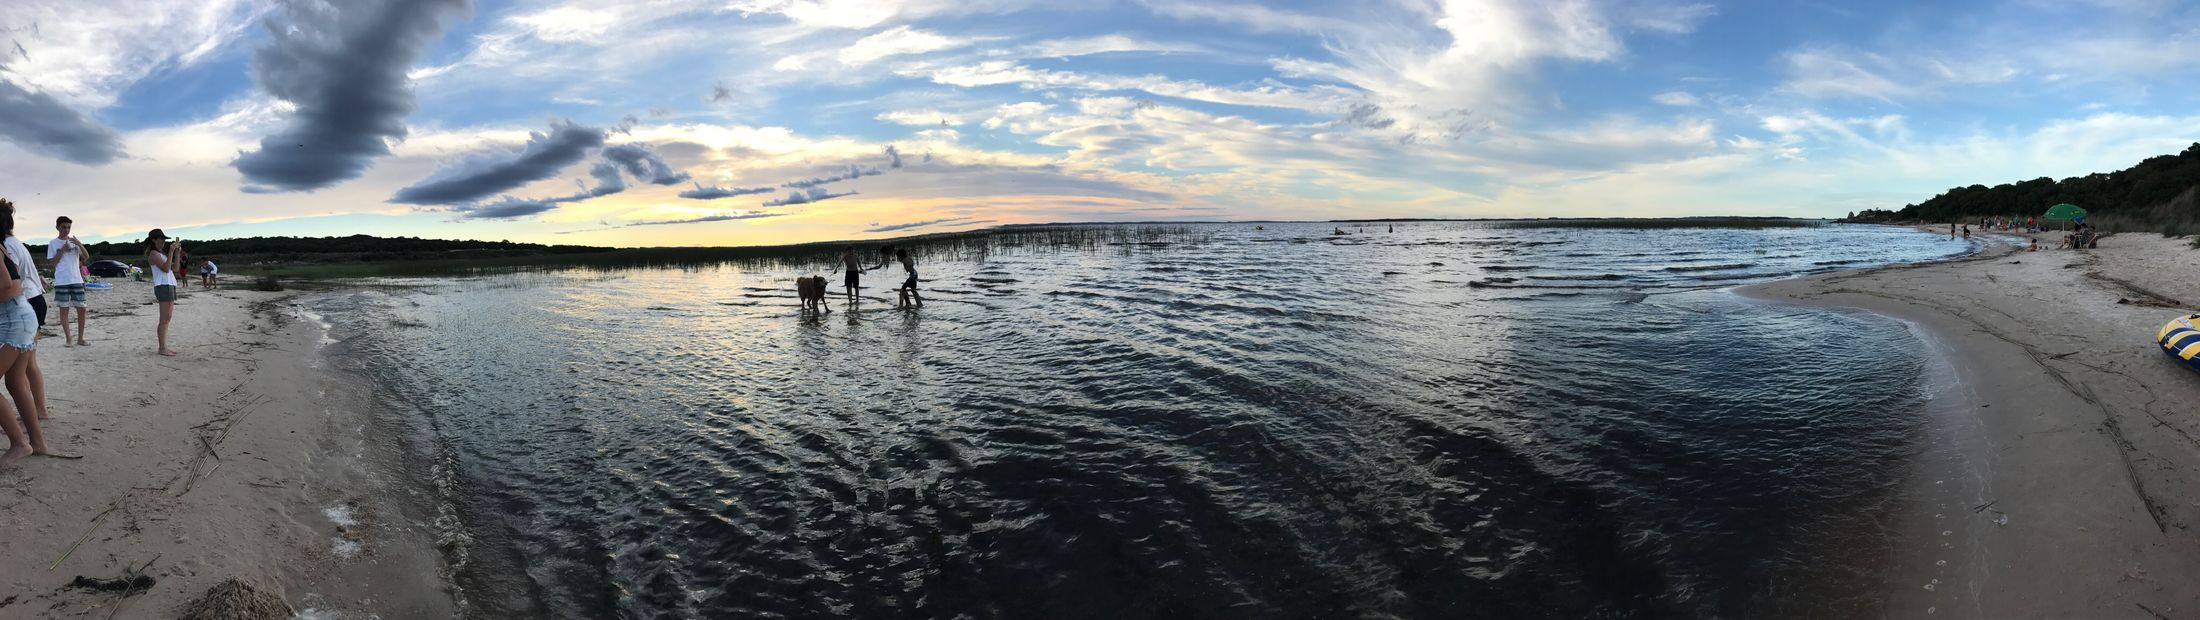 BLACK LAGOON Water Sky Cloud - Sky Sea Beach Beauty In Nature Scenics Outdoors Tranquility Tranquil Scene Day Sand Real People Horizon Over Water One Person People Nofilter#noedit Panoramic